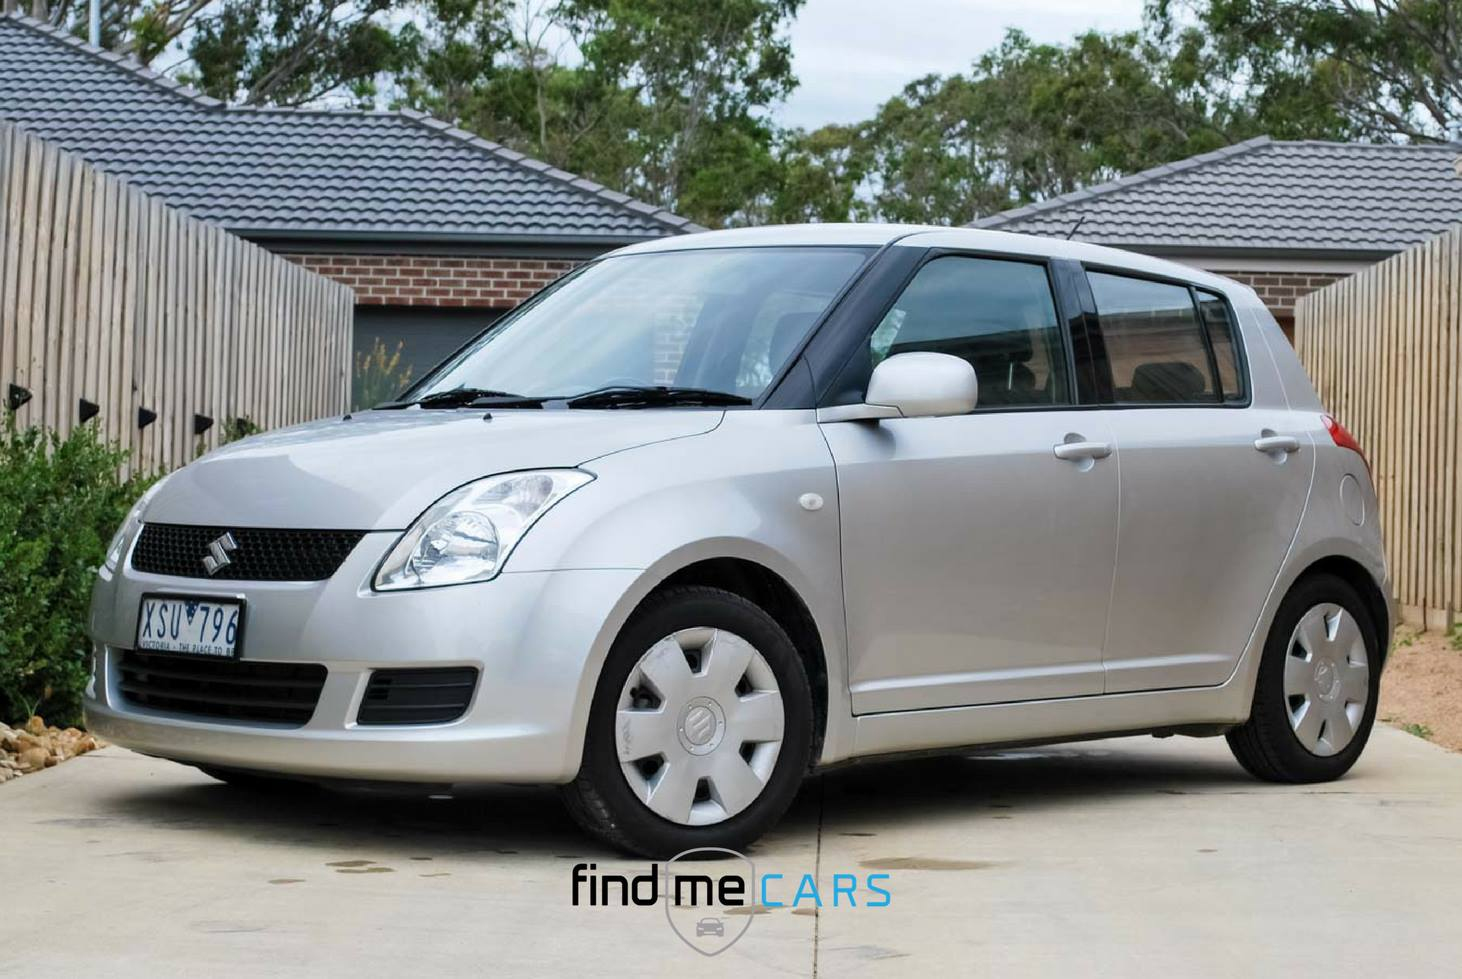 2010 suzuki swift find me cars. Black Bedroom Furniture Sets. Home Design Ideas